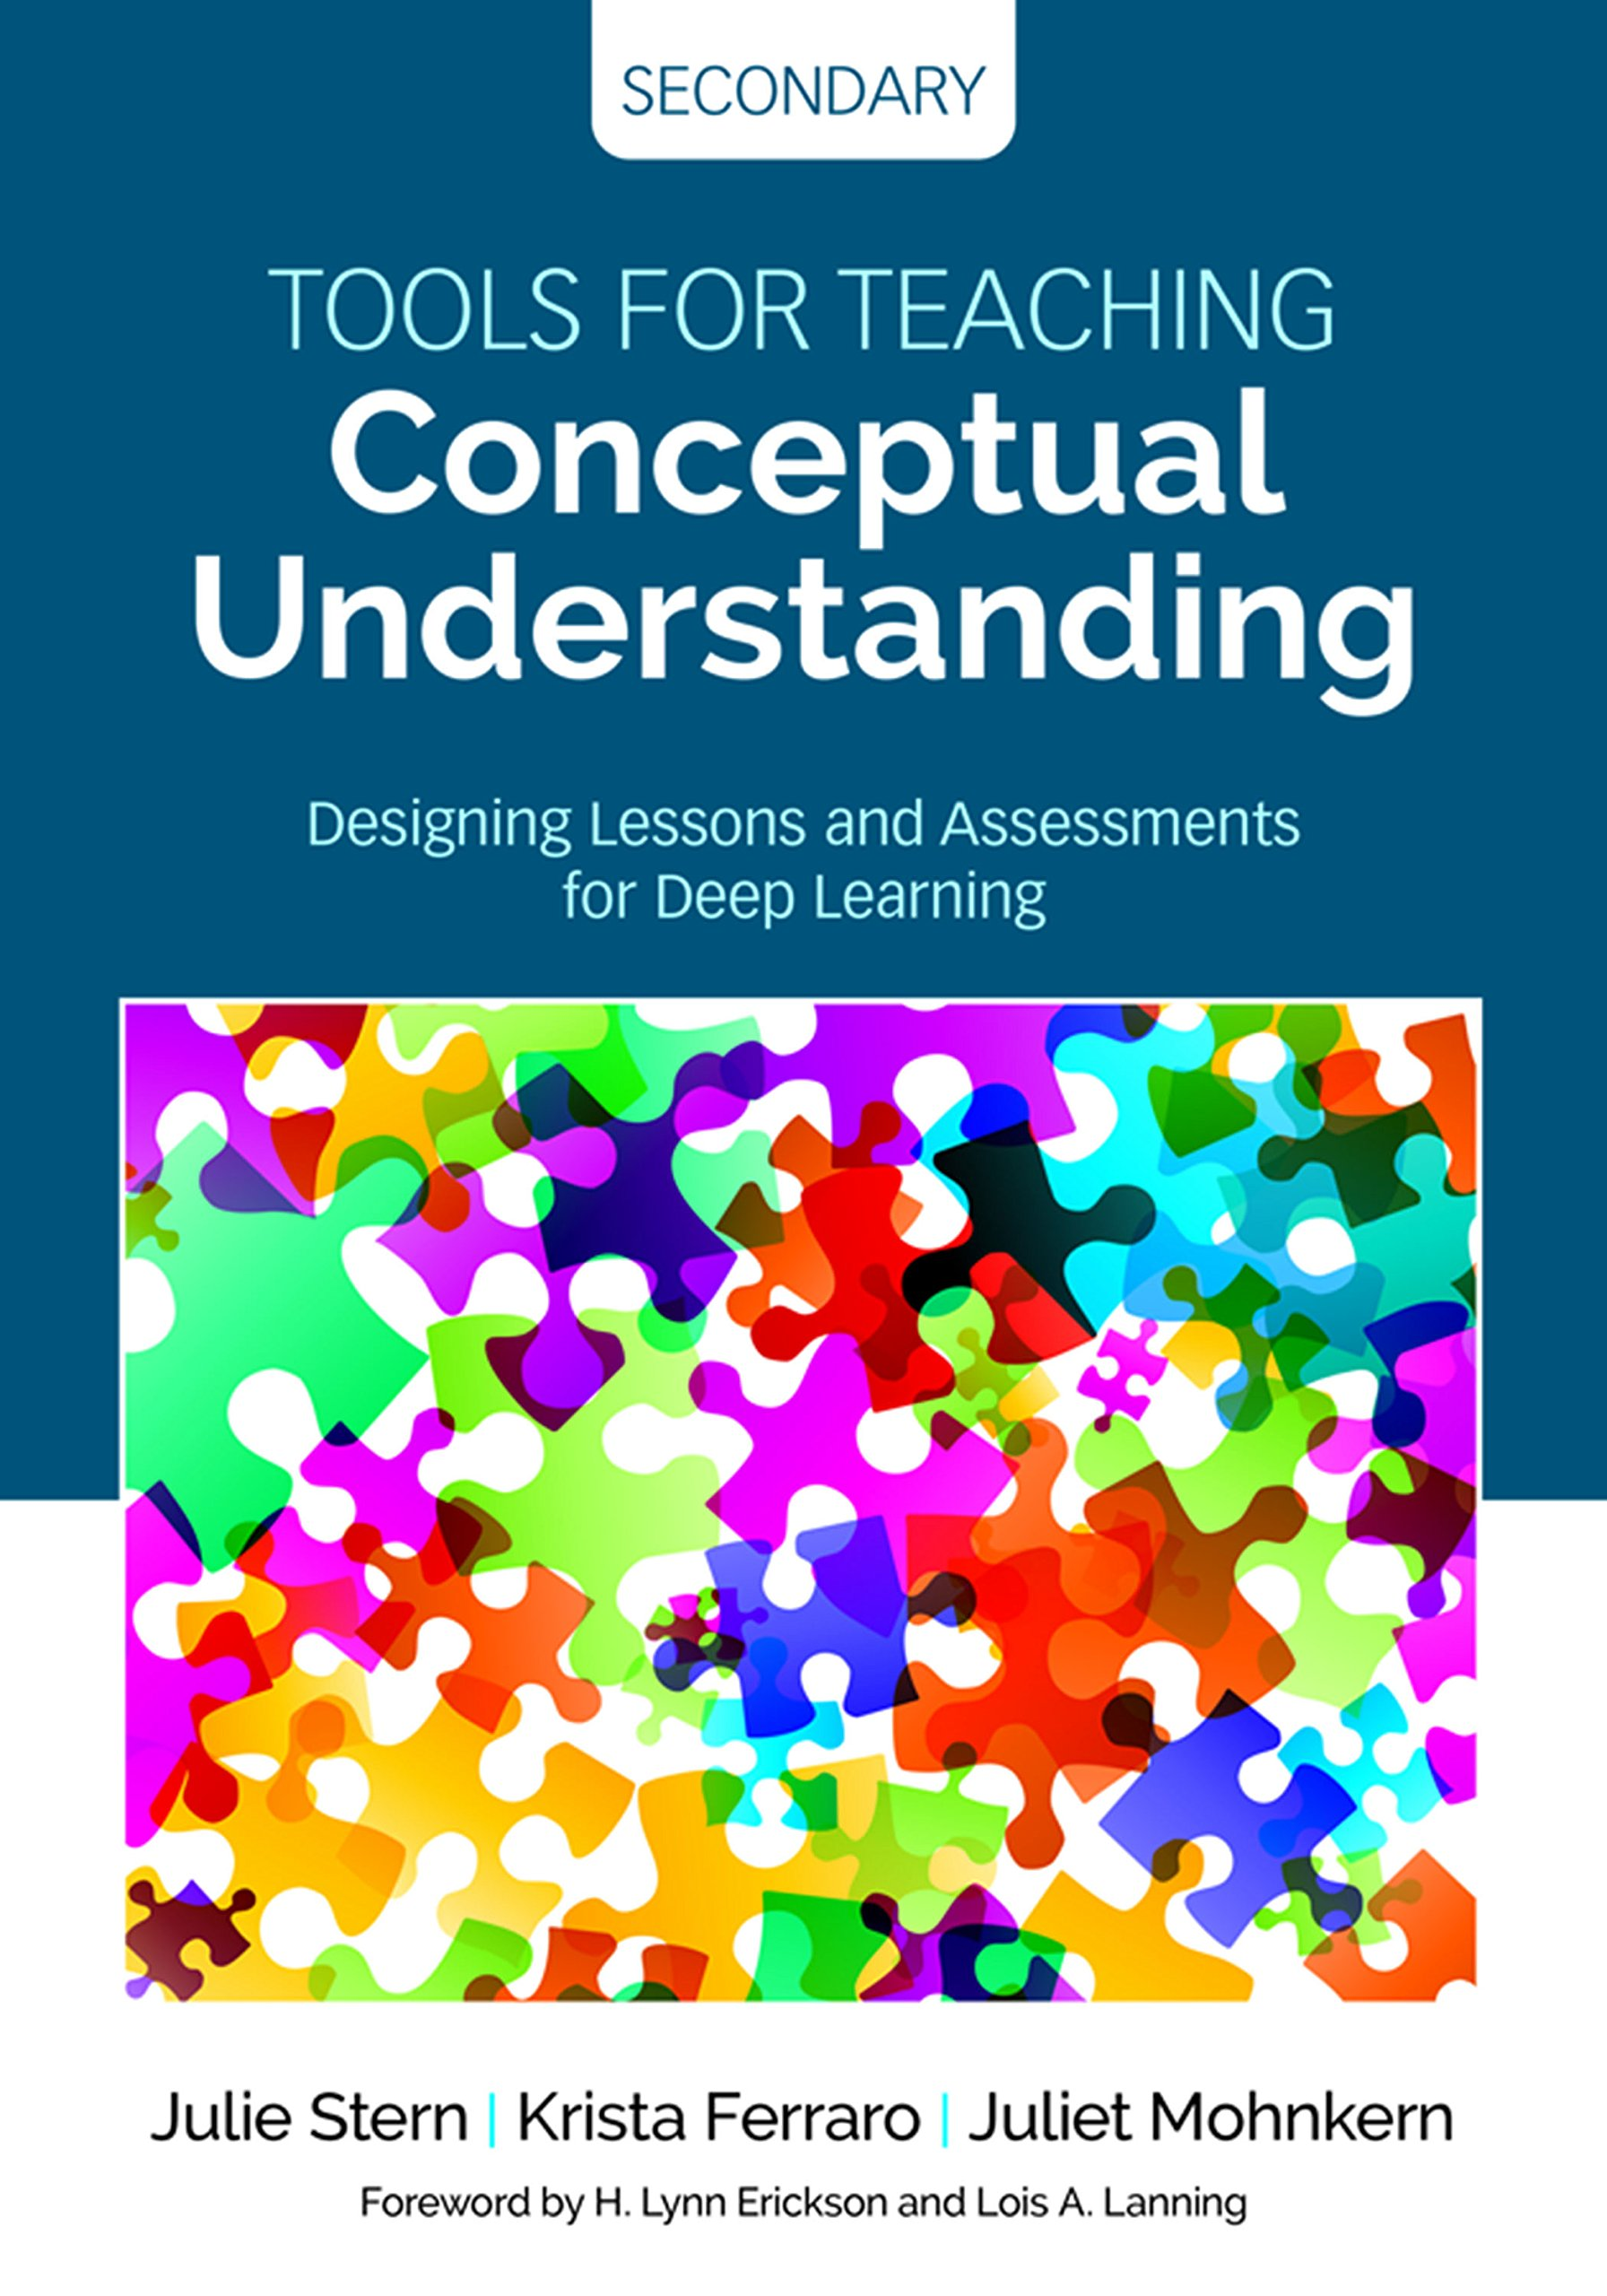 Image OfTools For Teaching Conceptual Understanding, Secondary: Designing Lessons And Assessments For Deep Learning (Corwin Teachi...